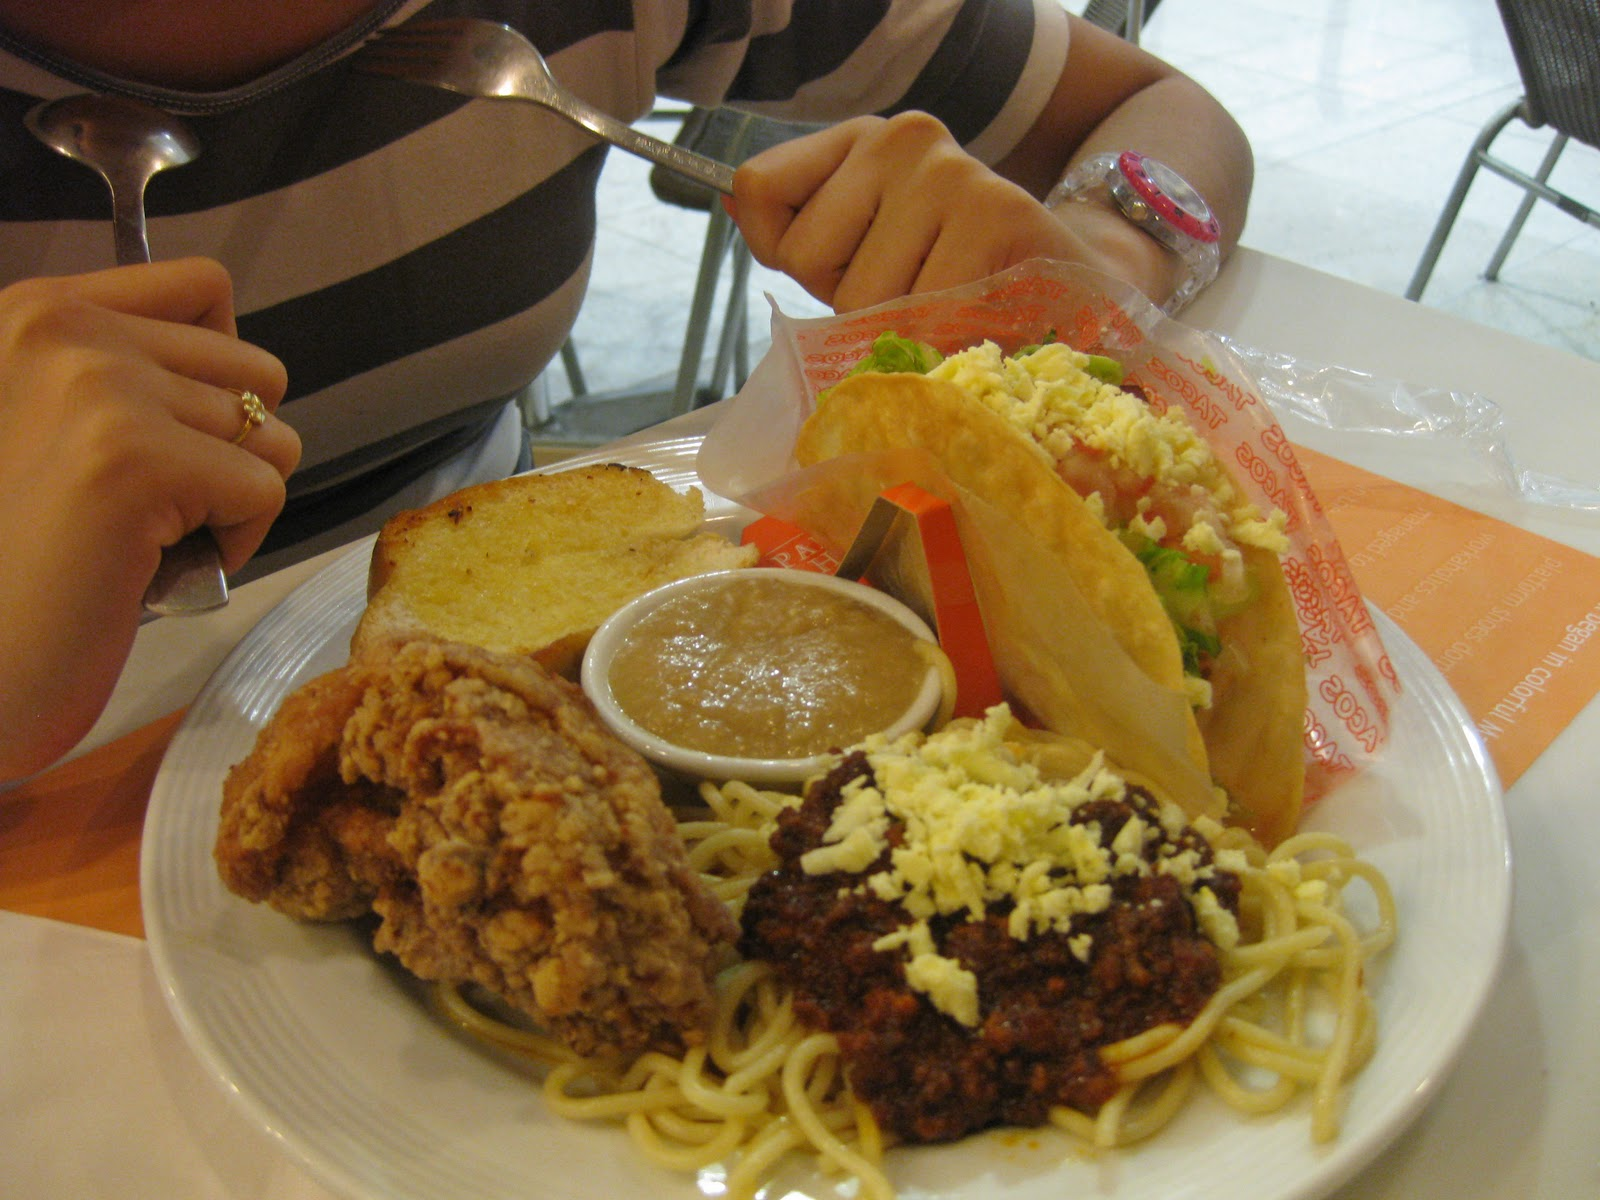 Going through the motions dinner pancake house with mama sis house special set php 215 a delicious mix specialties of the house taco spaghetti with garlic bread pan chicken and iced tea see below ccuart Gallery